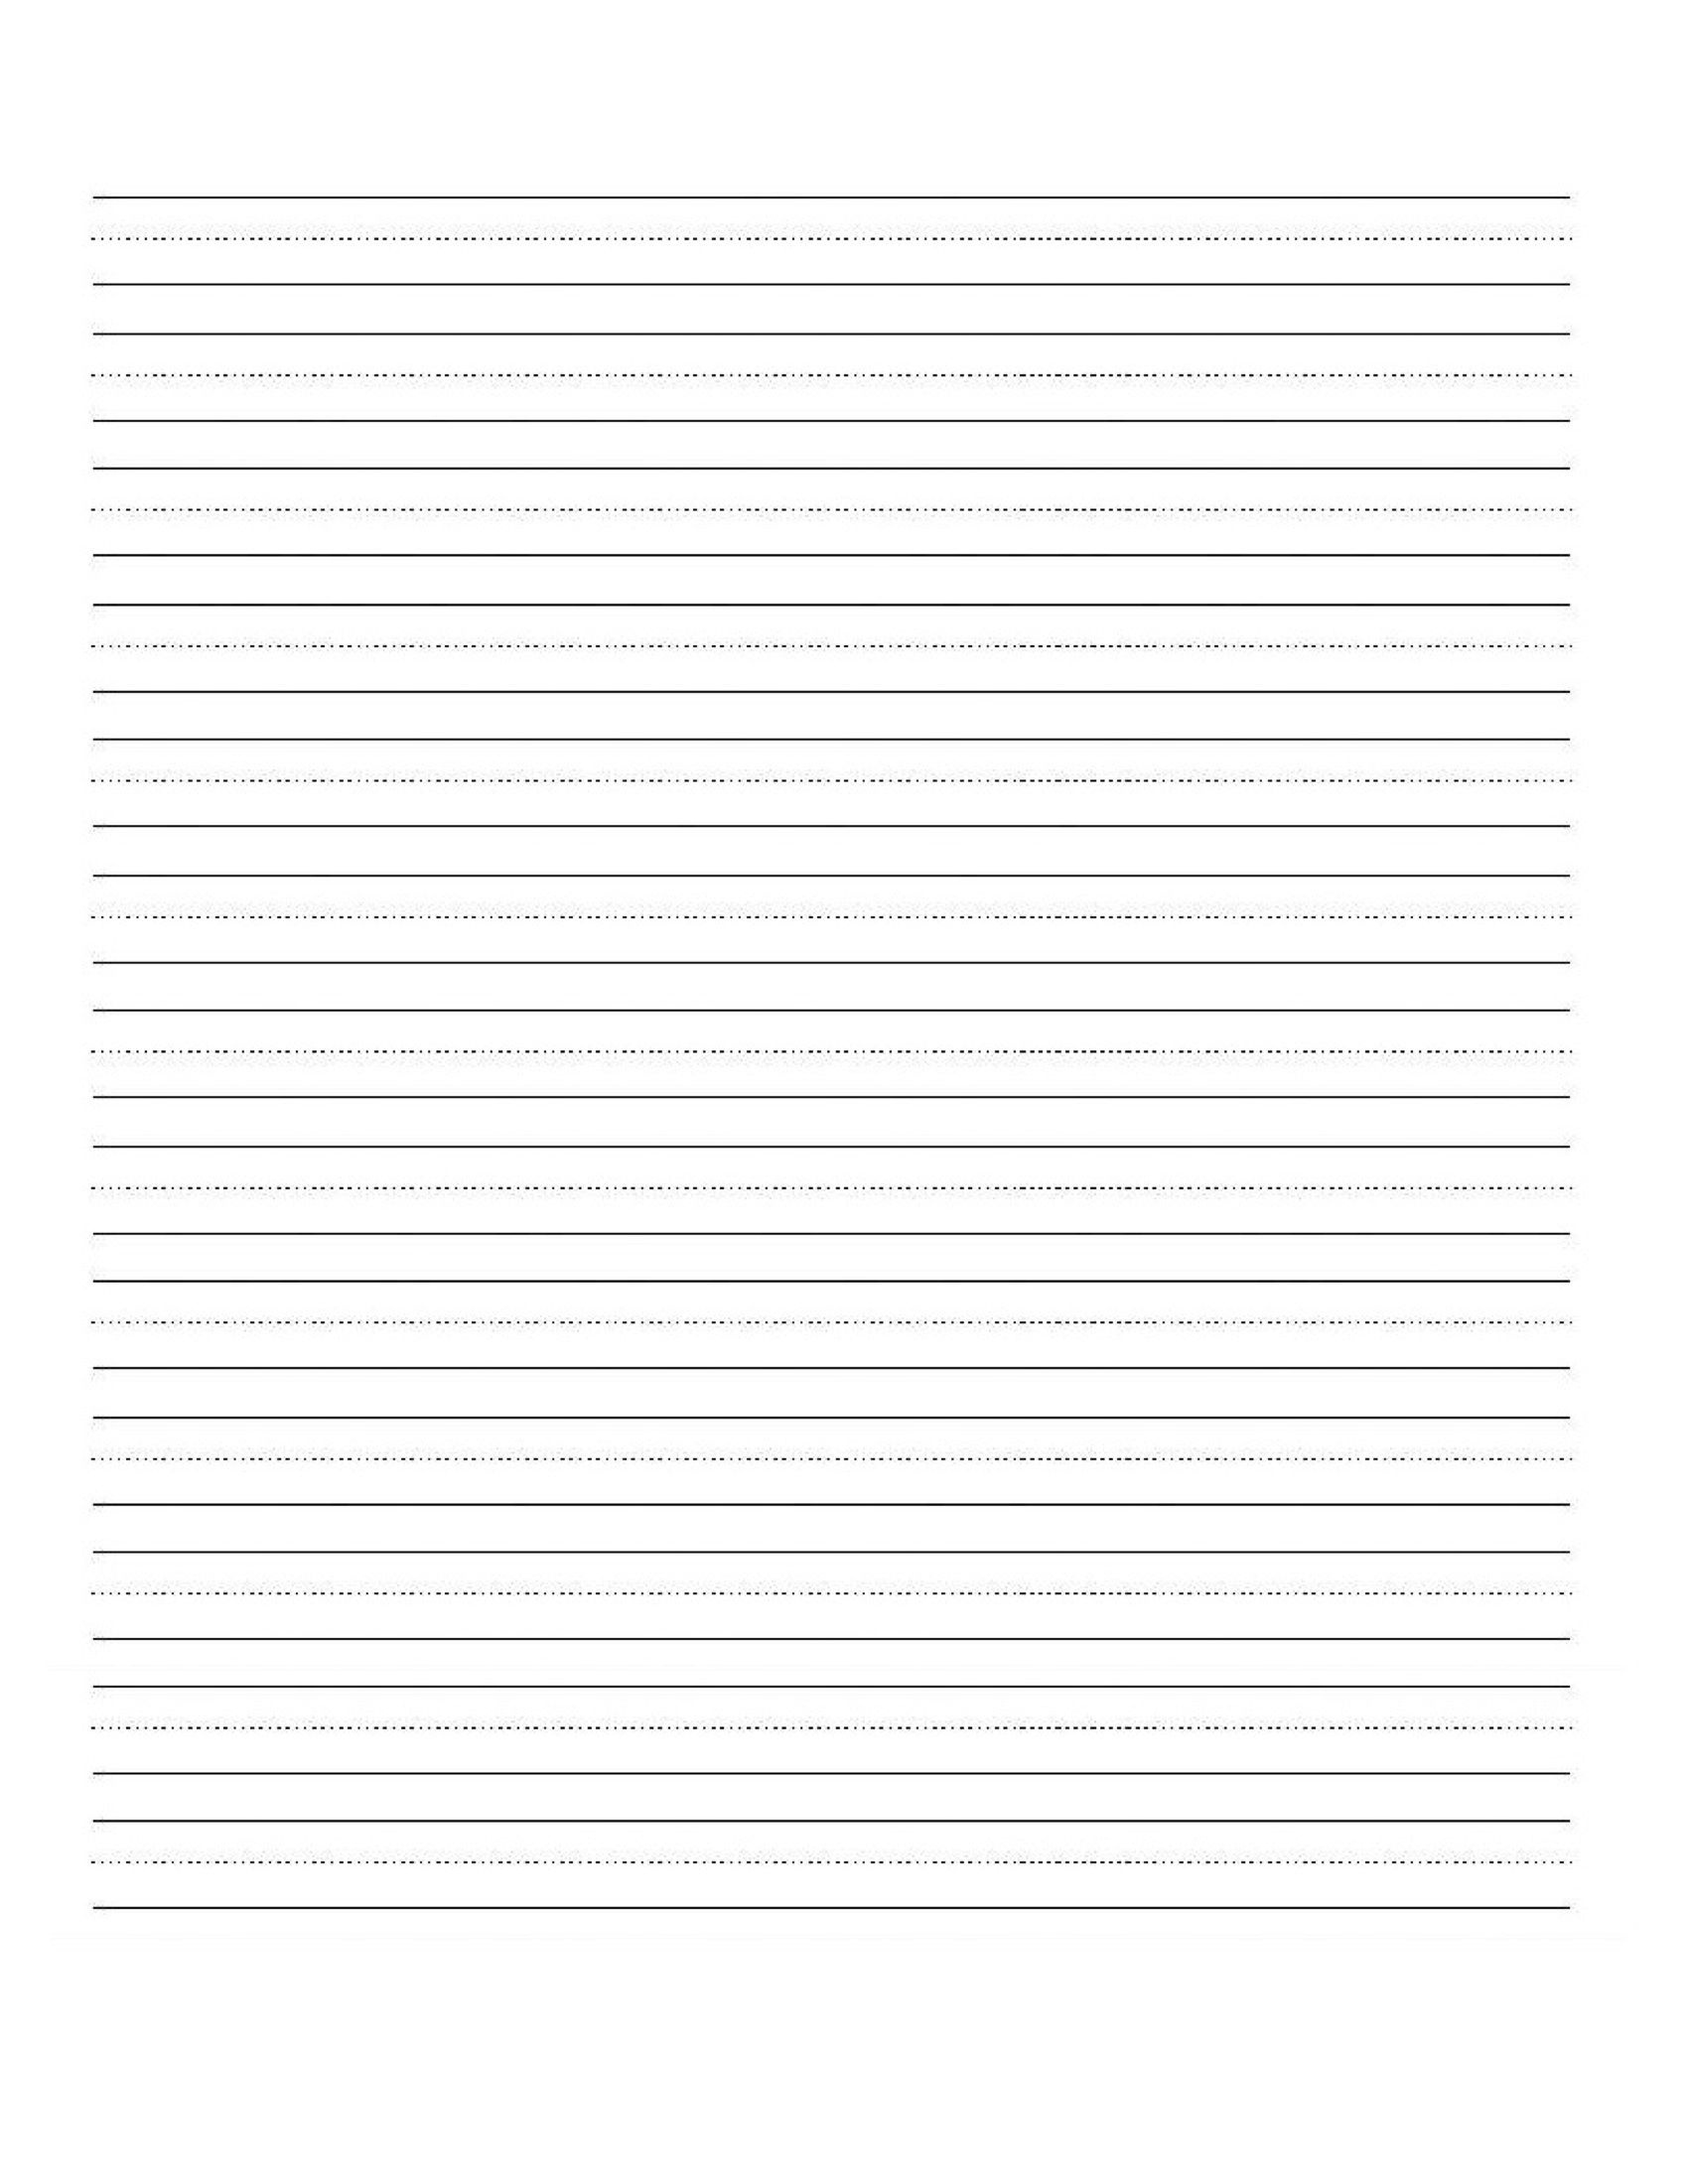 Cursive Writing Worksheets Free Alphabet Cursive Writing Worksheets - Free Printable Writing Sheets